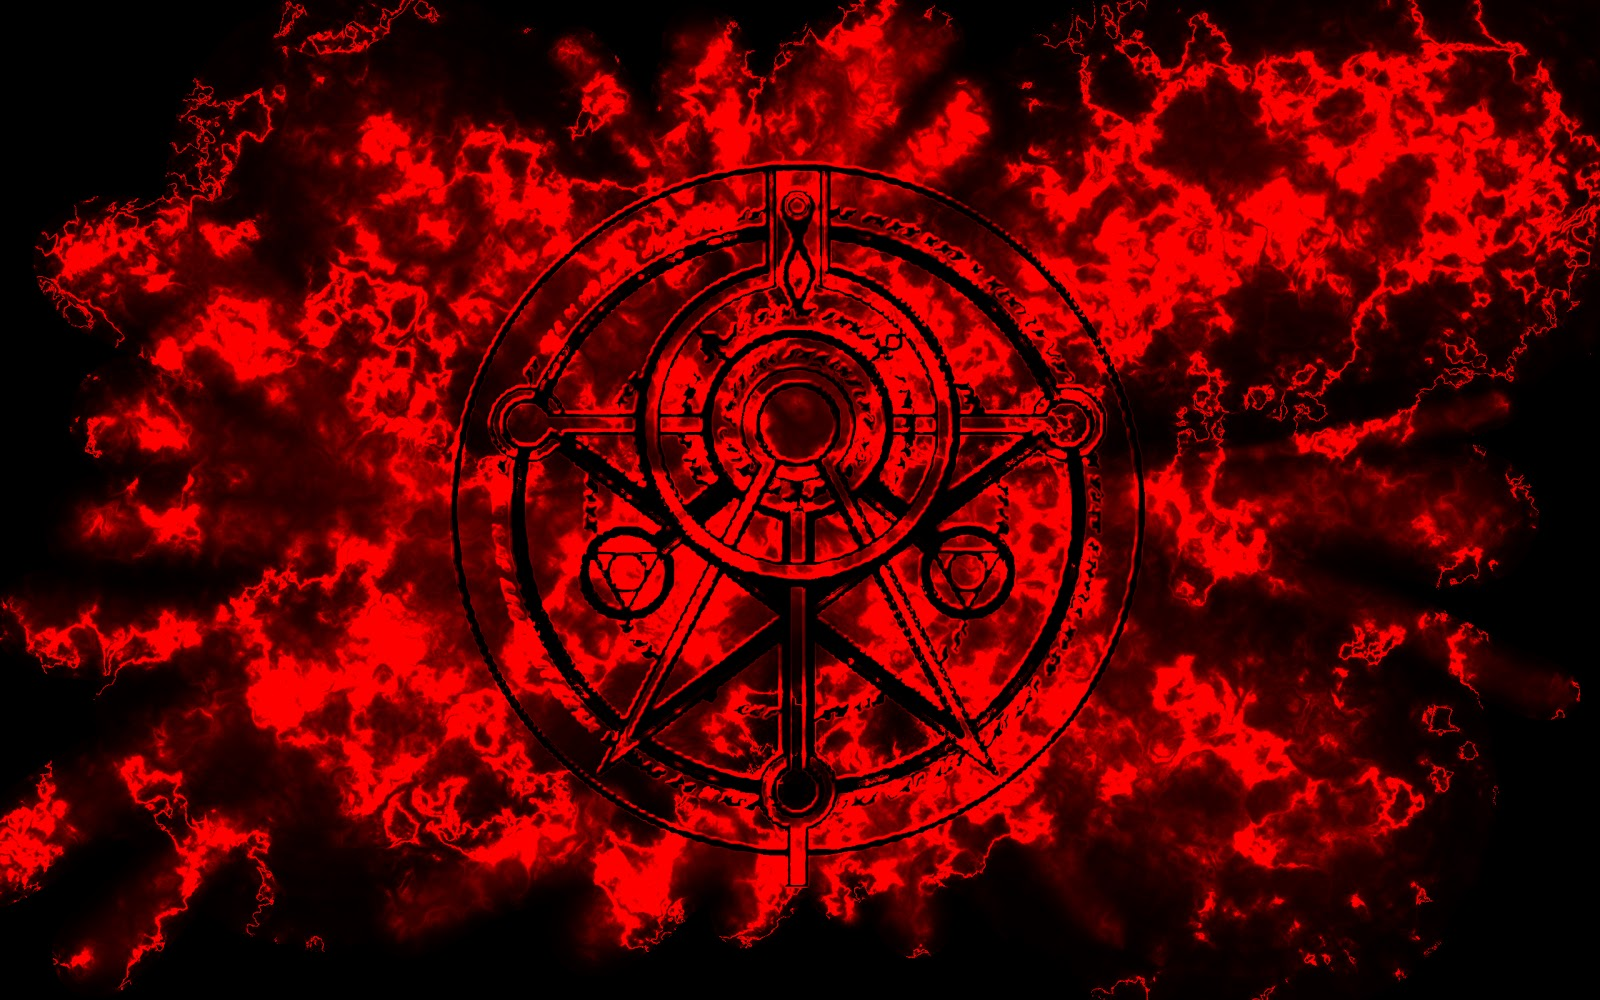 Banilung: red and black wallpaper